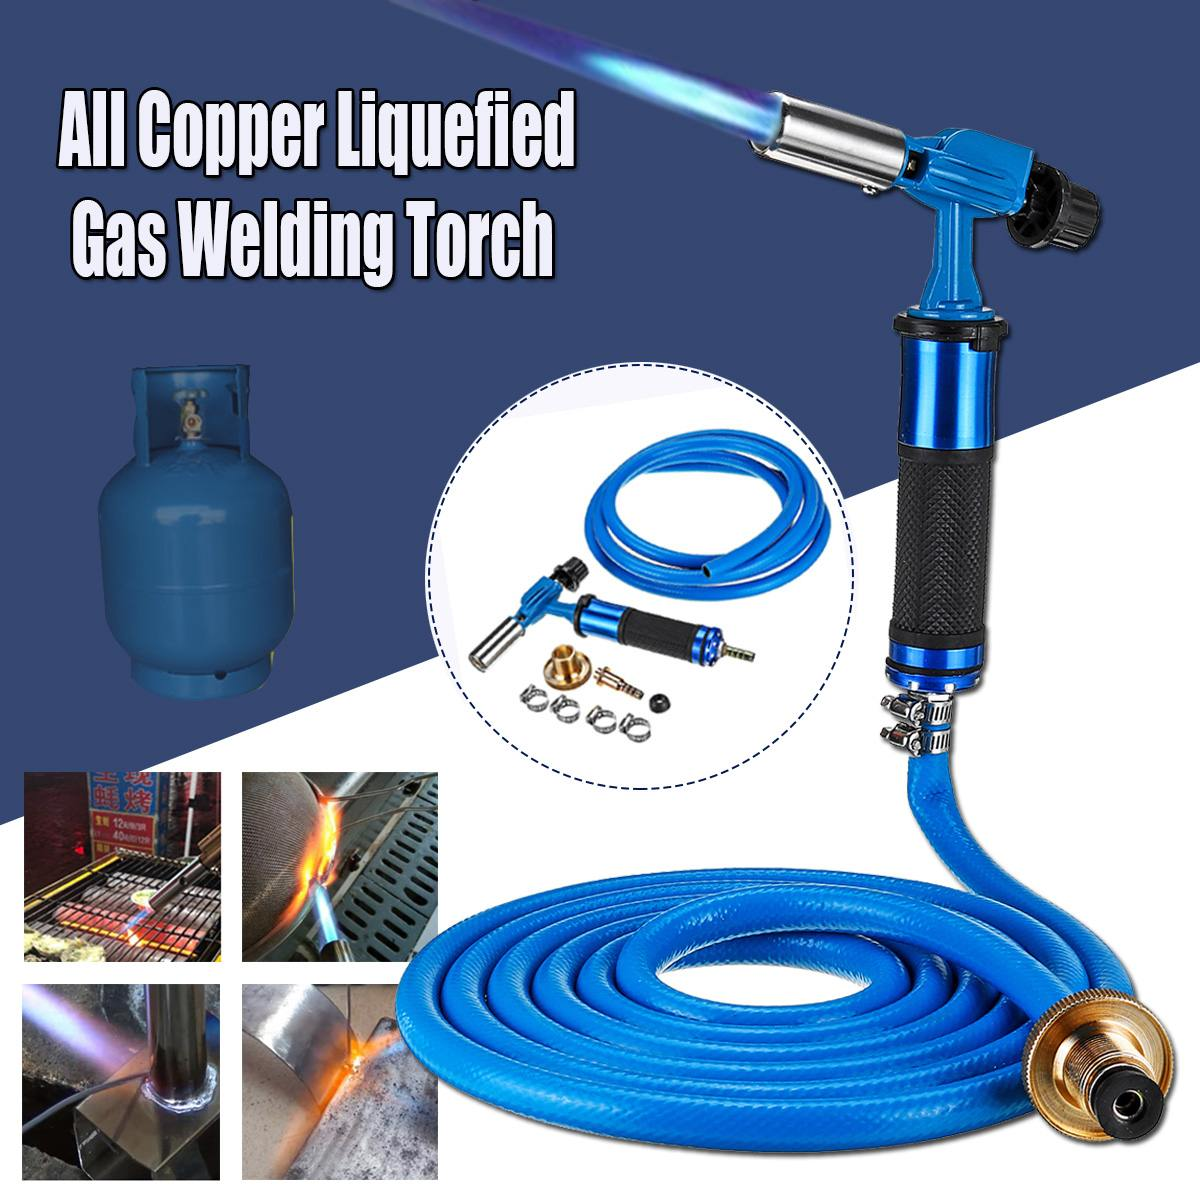 Liquefied Propane Gas Electronic Ignition Welding Torch Machine Equipment with 300CM Hose for Soldering Weld Cooking Heating|Gas Welding Equipment| - AliExpress